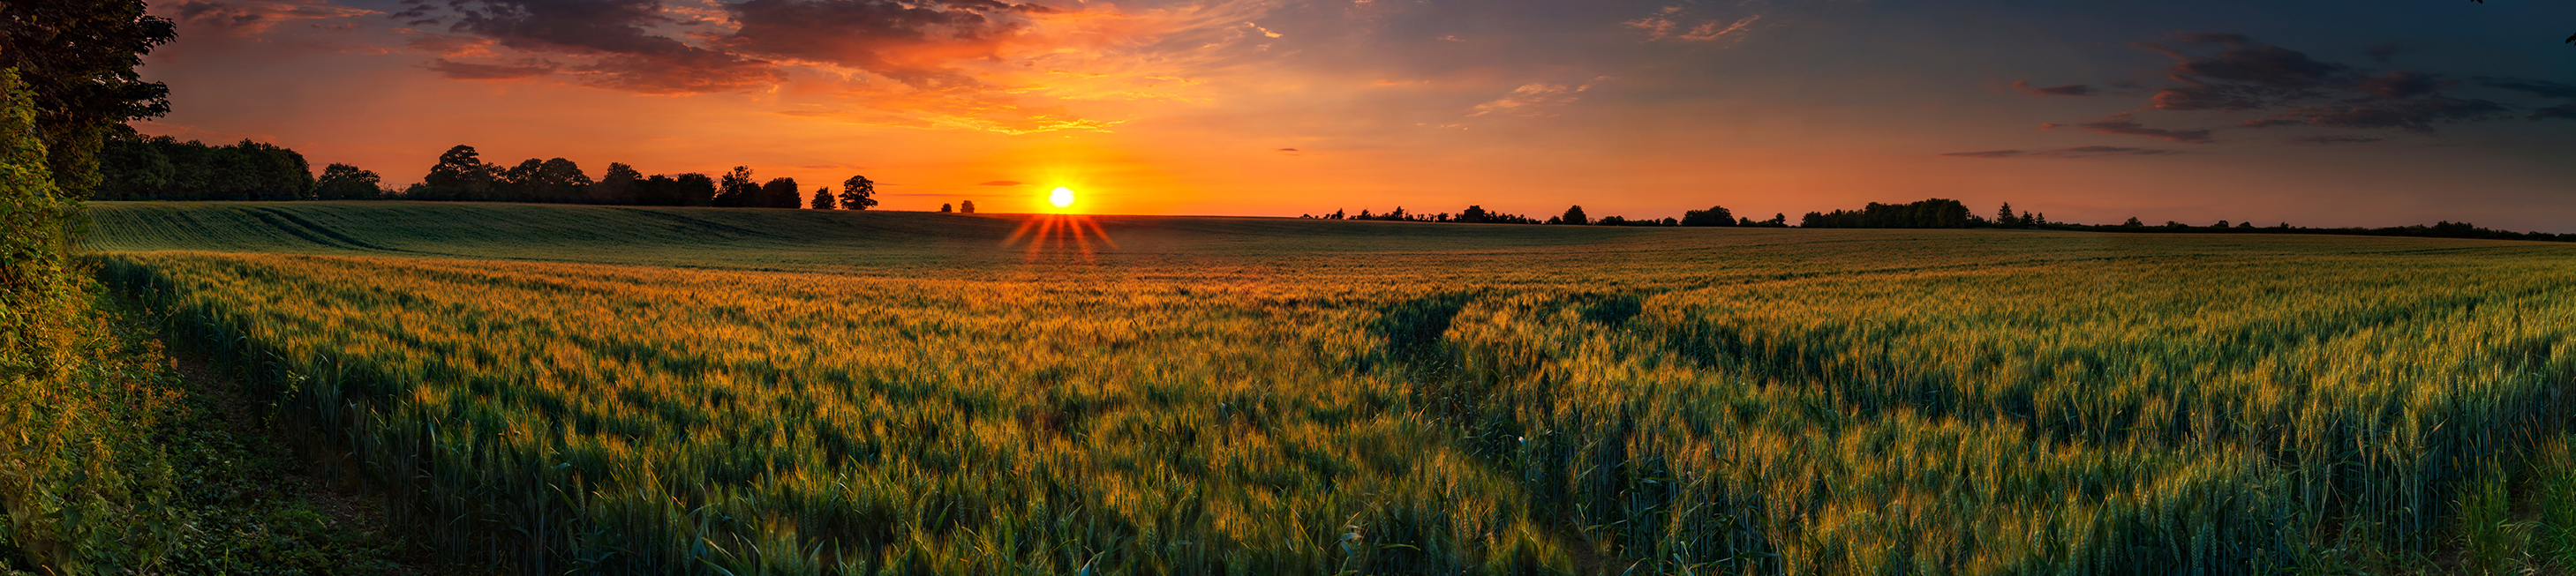 Sunset on a wheat field